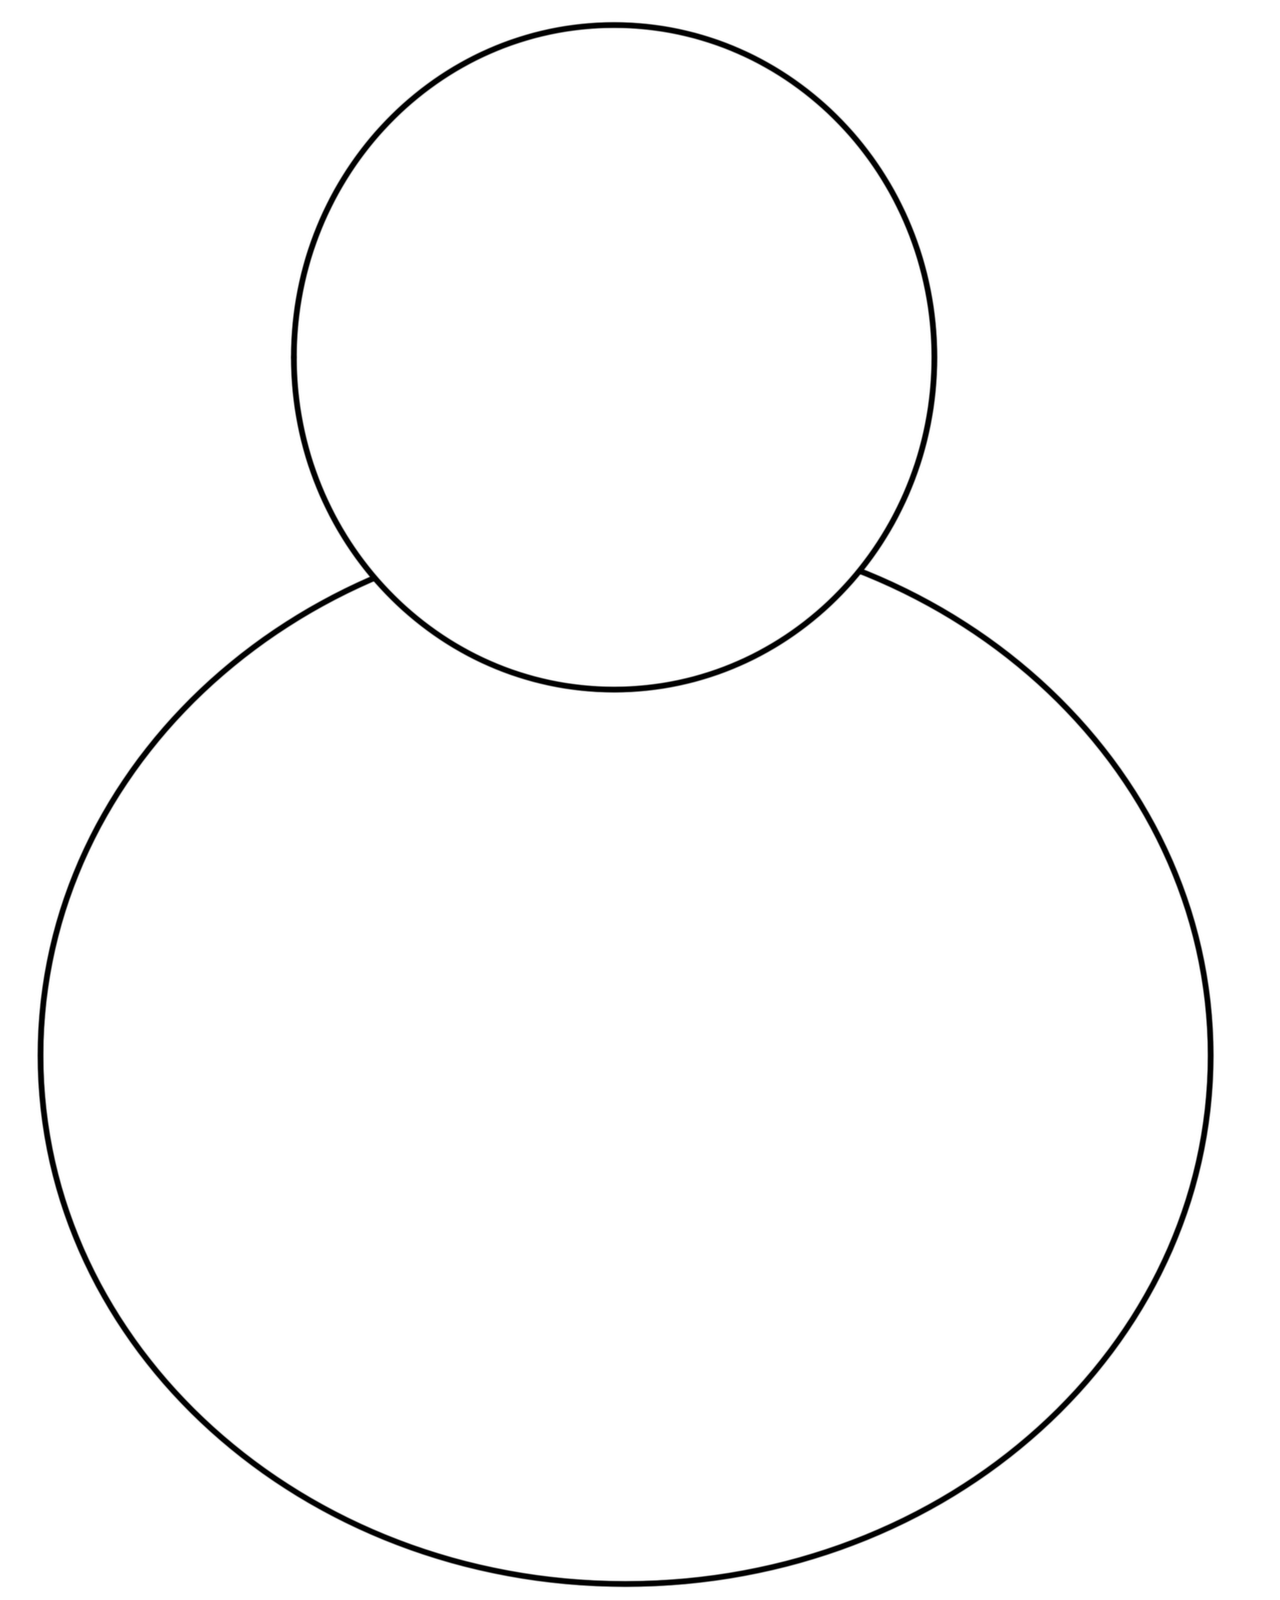 5 Images of Printable Blank Snowman